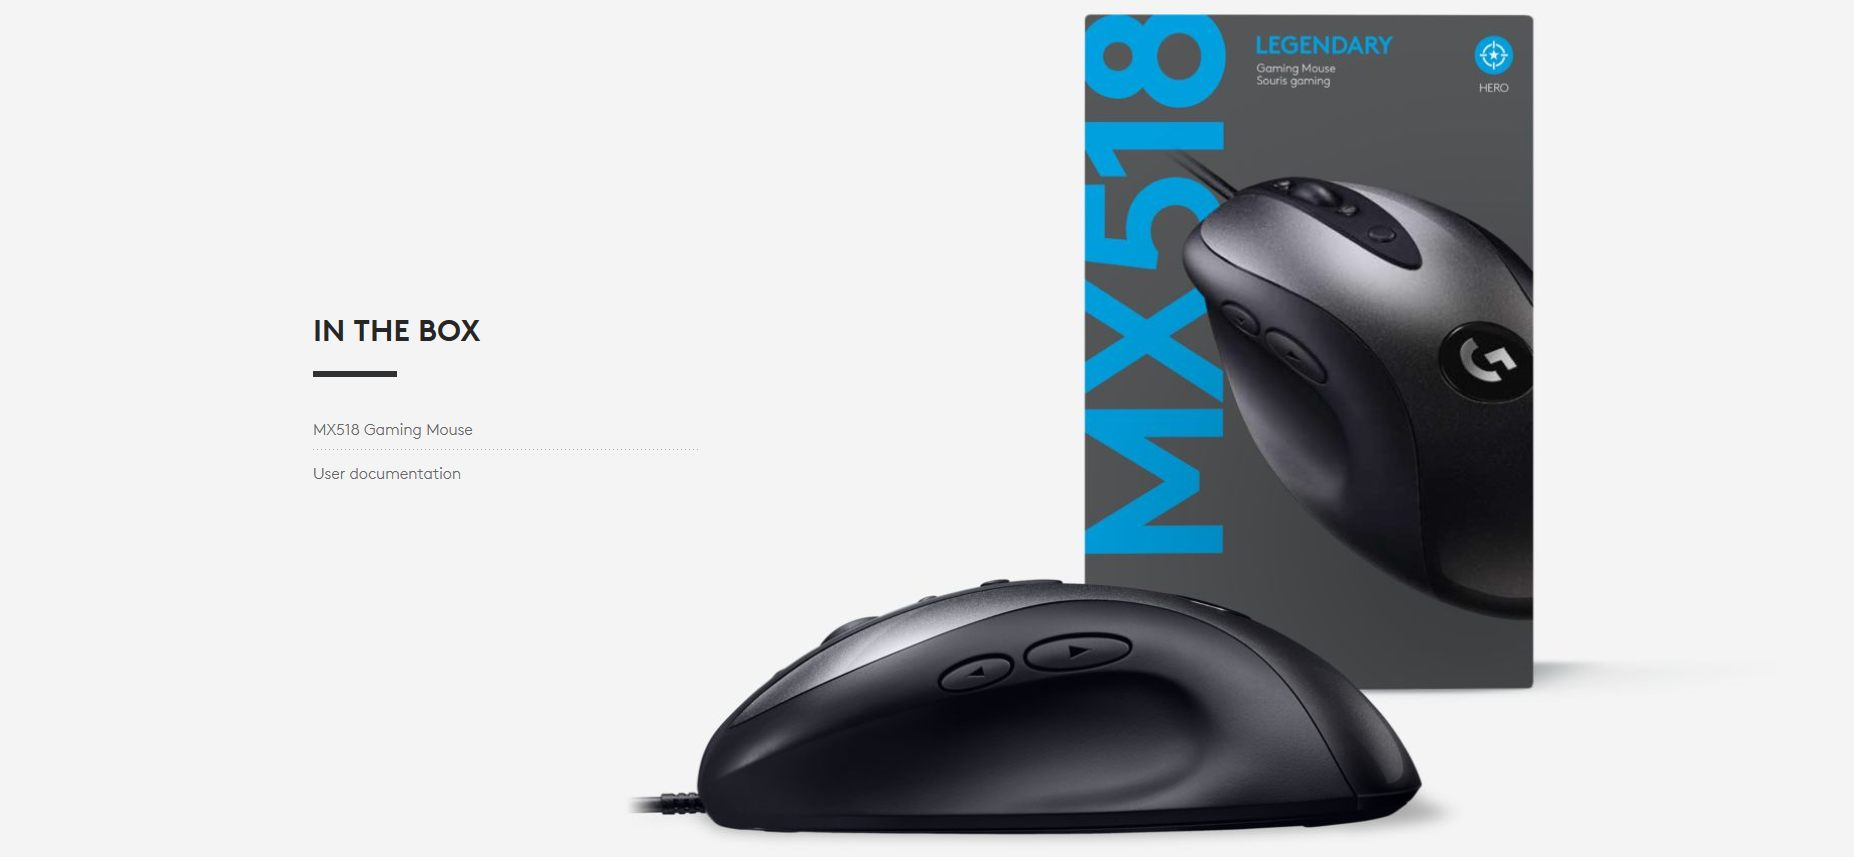 Logitech G MX518 gaming mouse wired